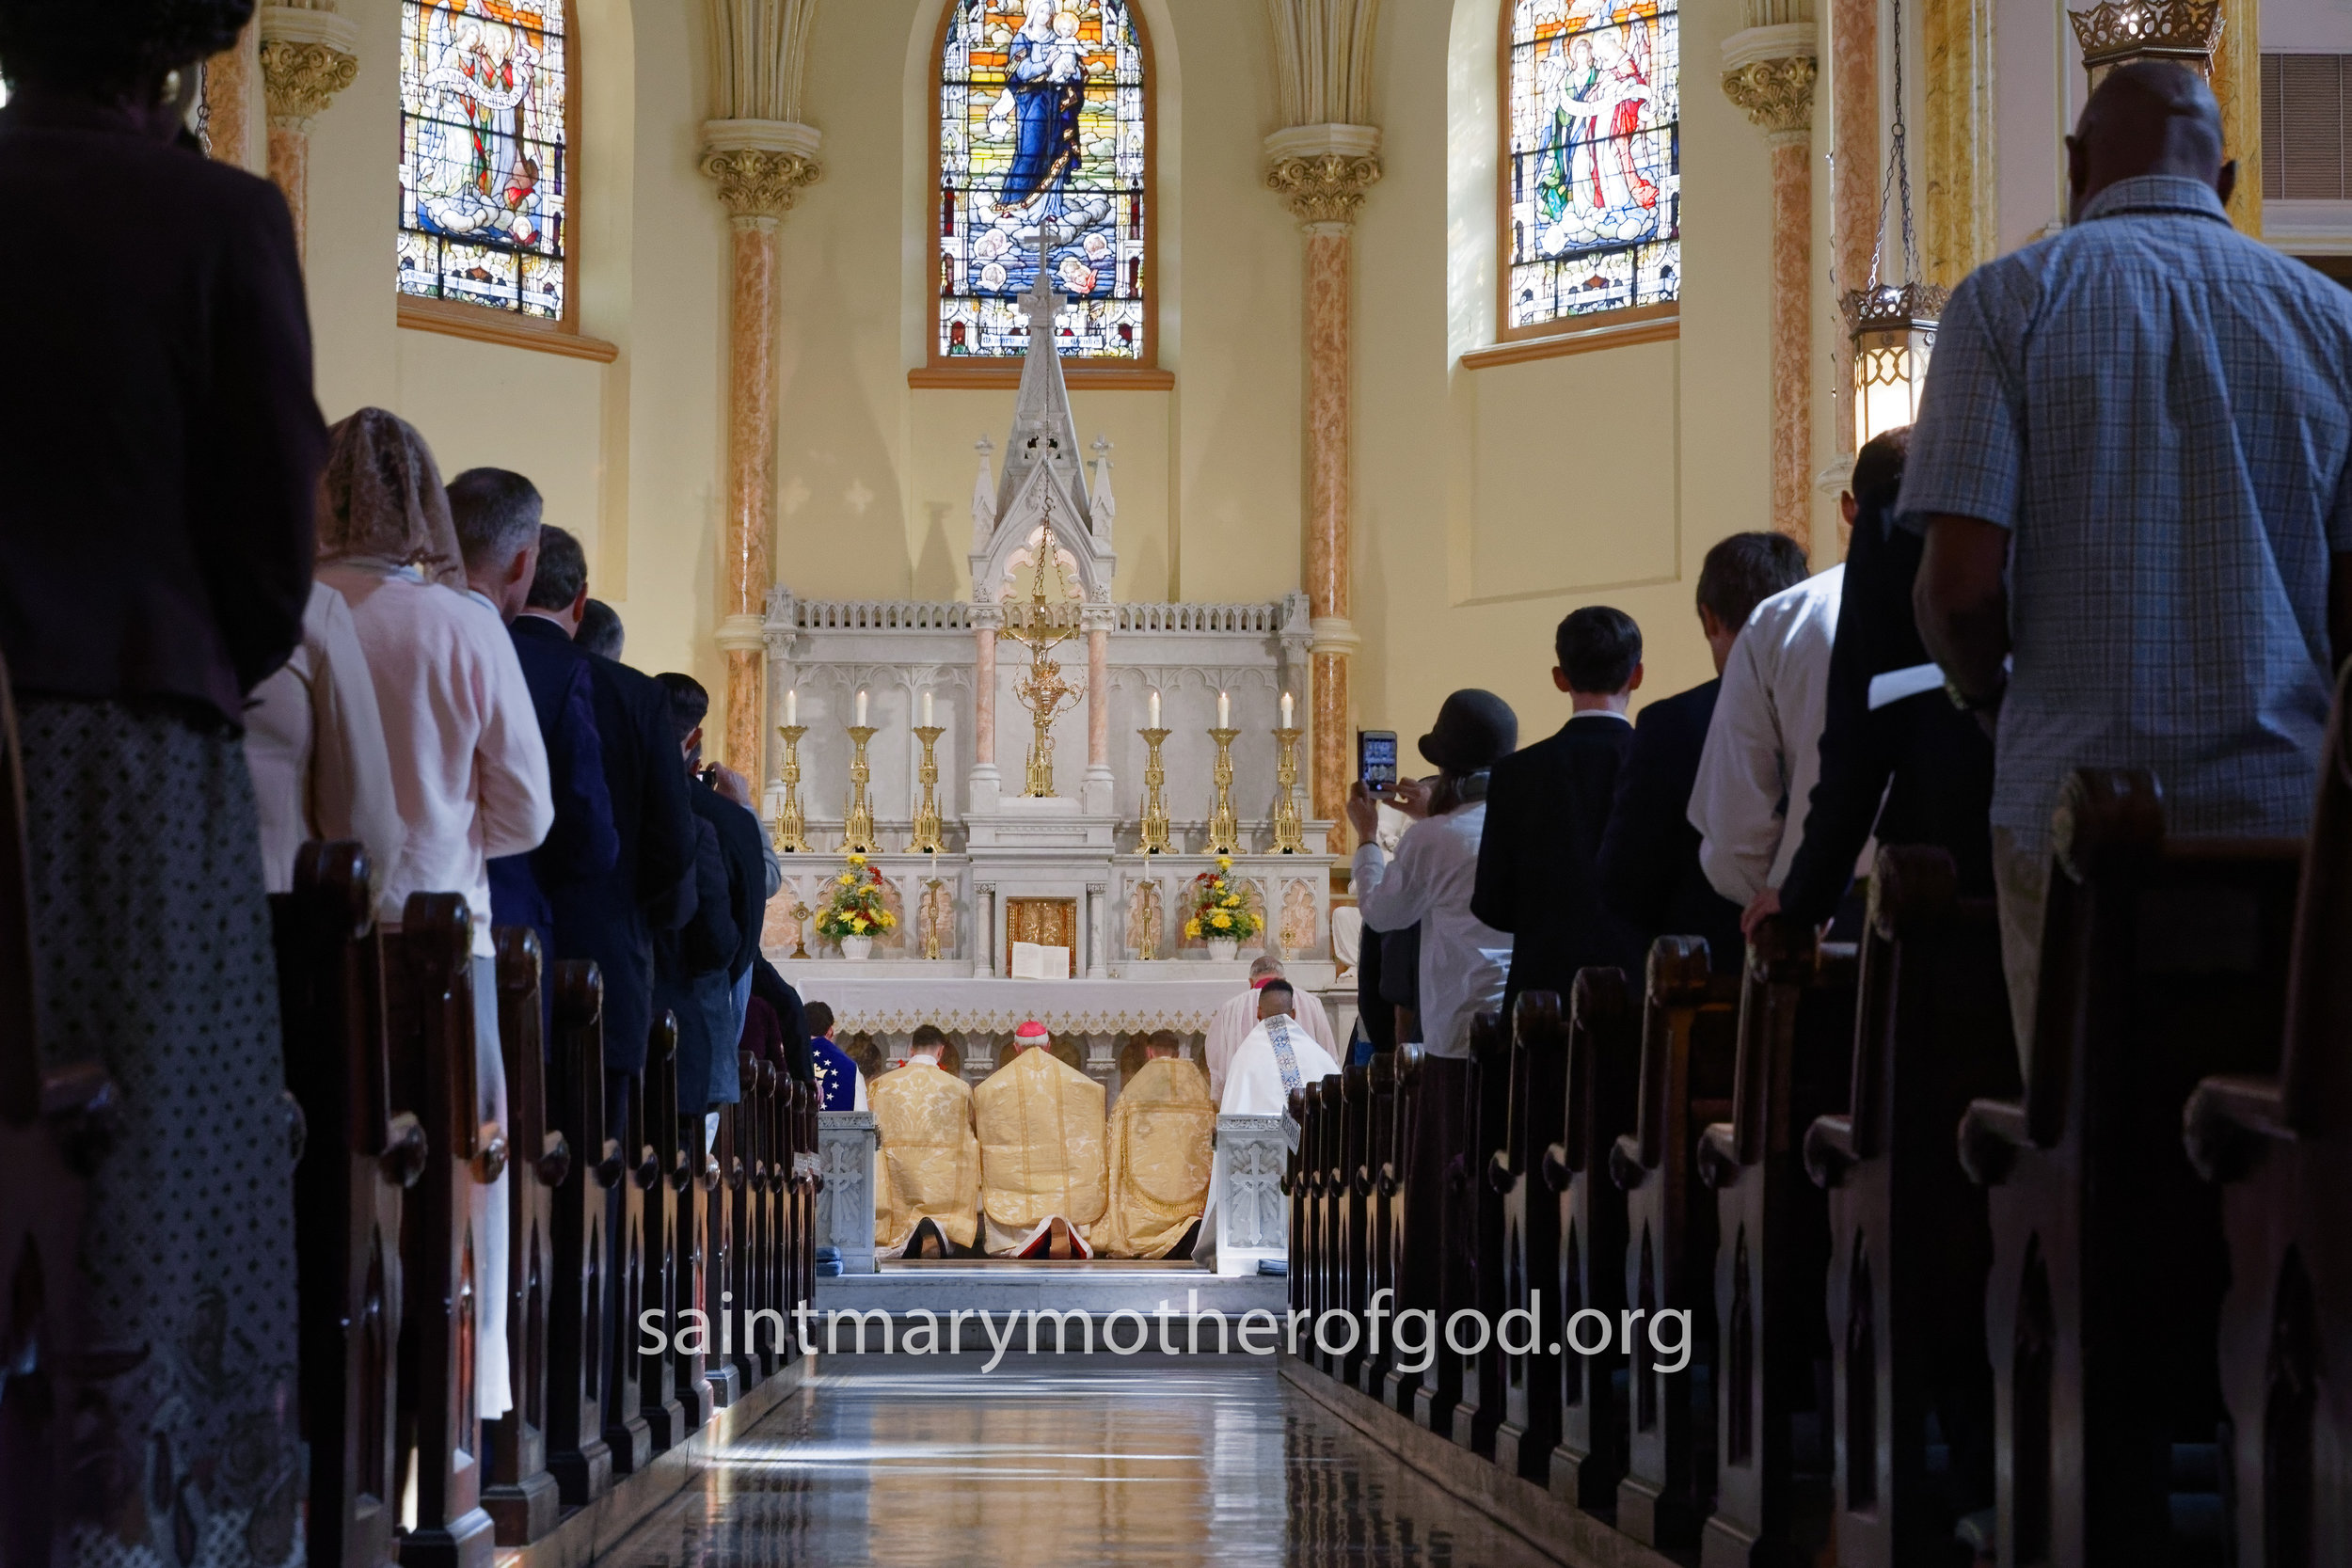 Saint Mary Mother of God Blessed Karl Vitacco Photos-13.jpg